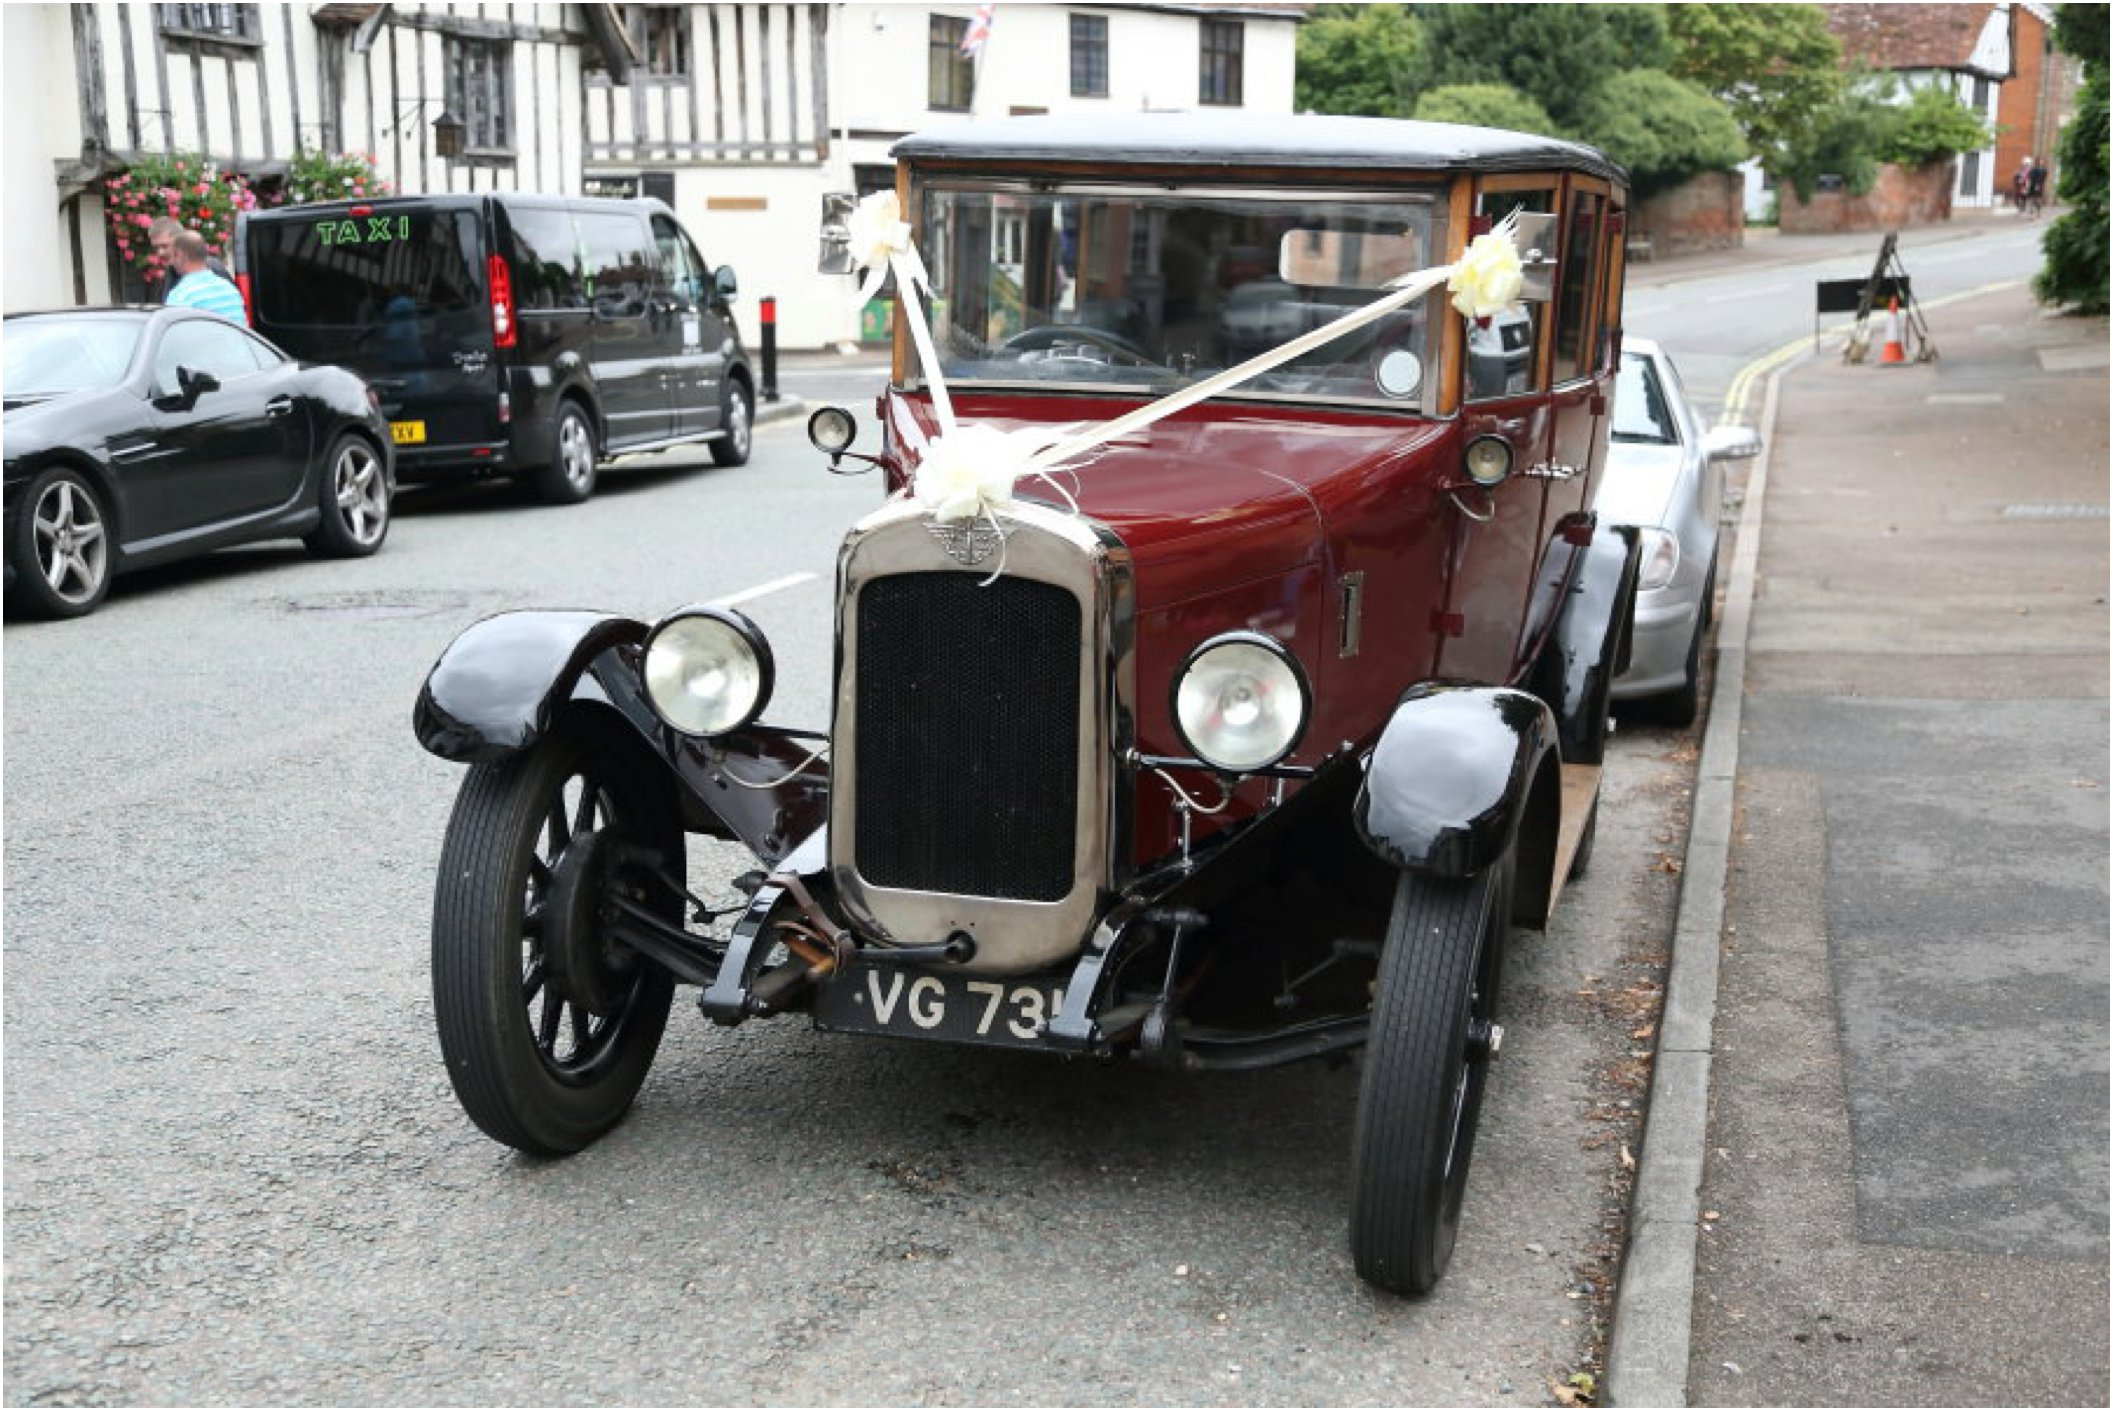 Vintage car at lavenham wedding, suffolk